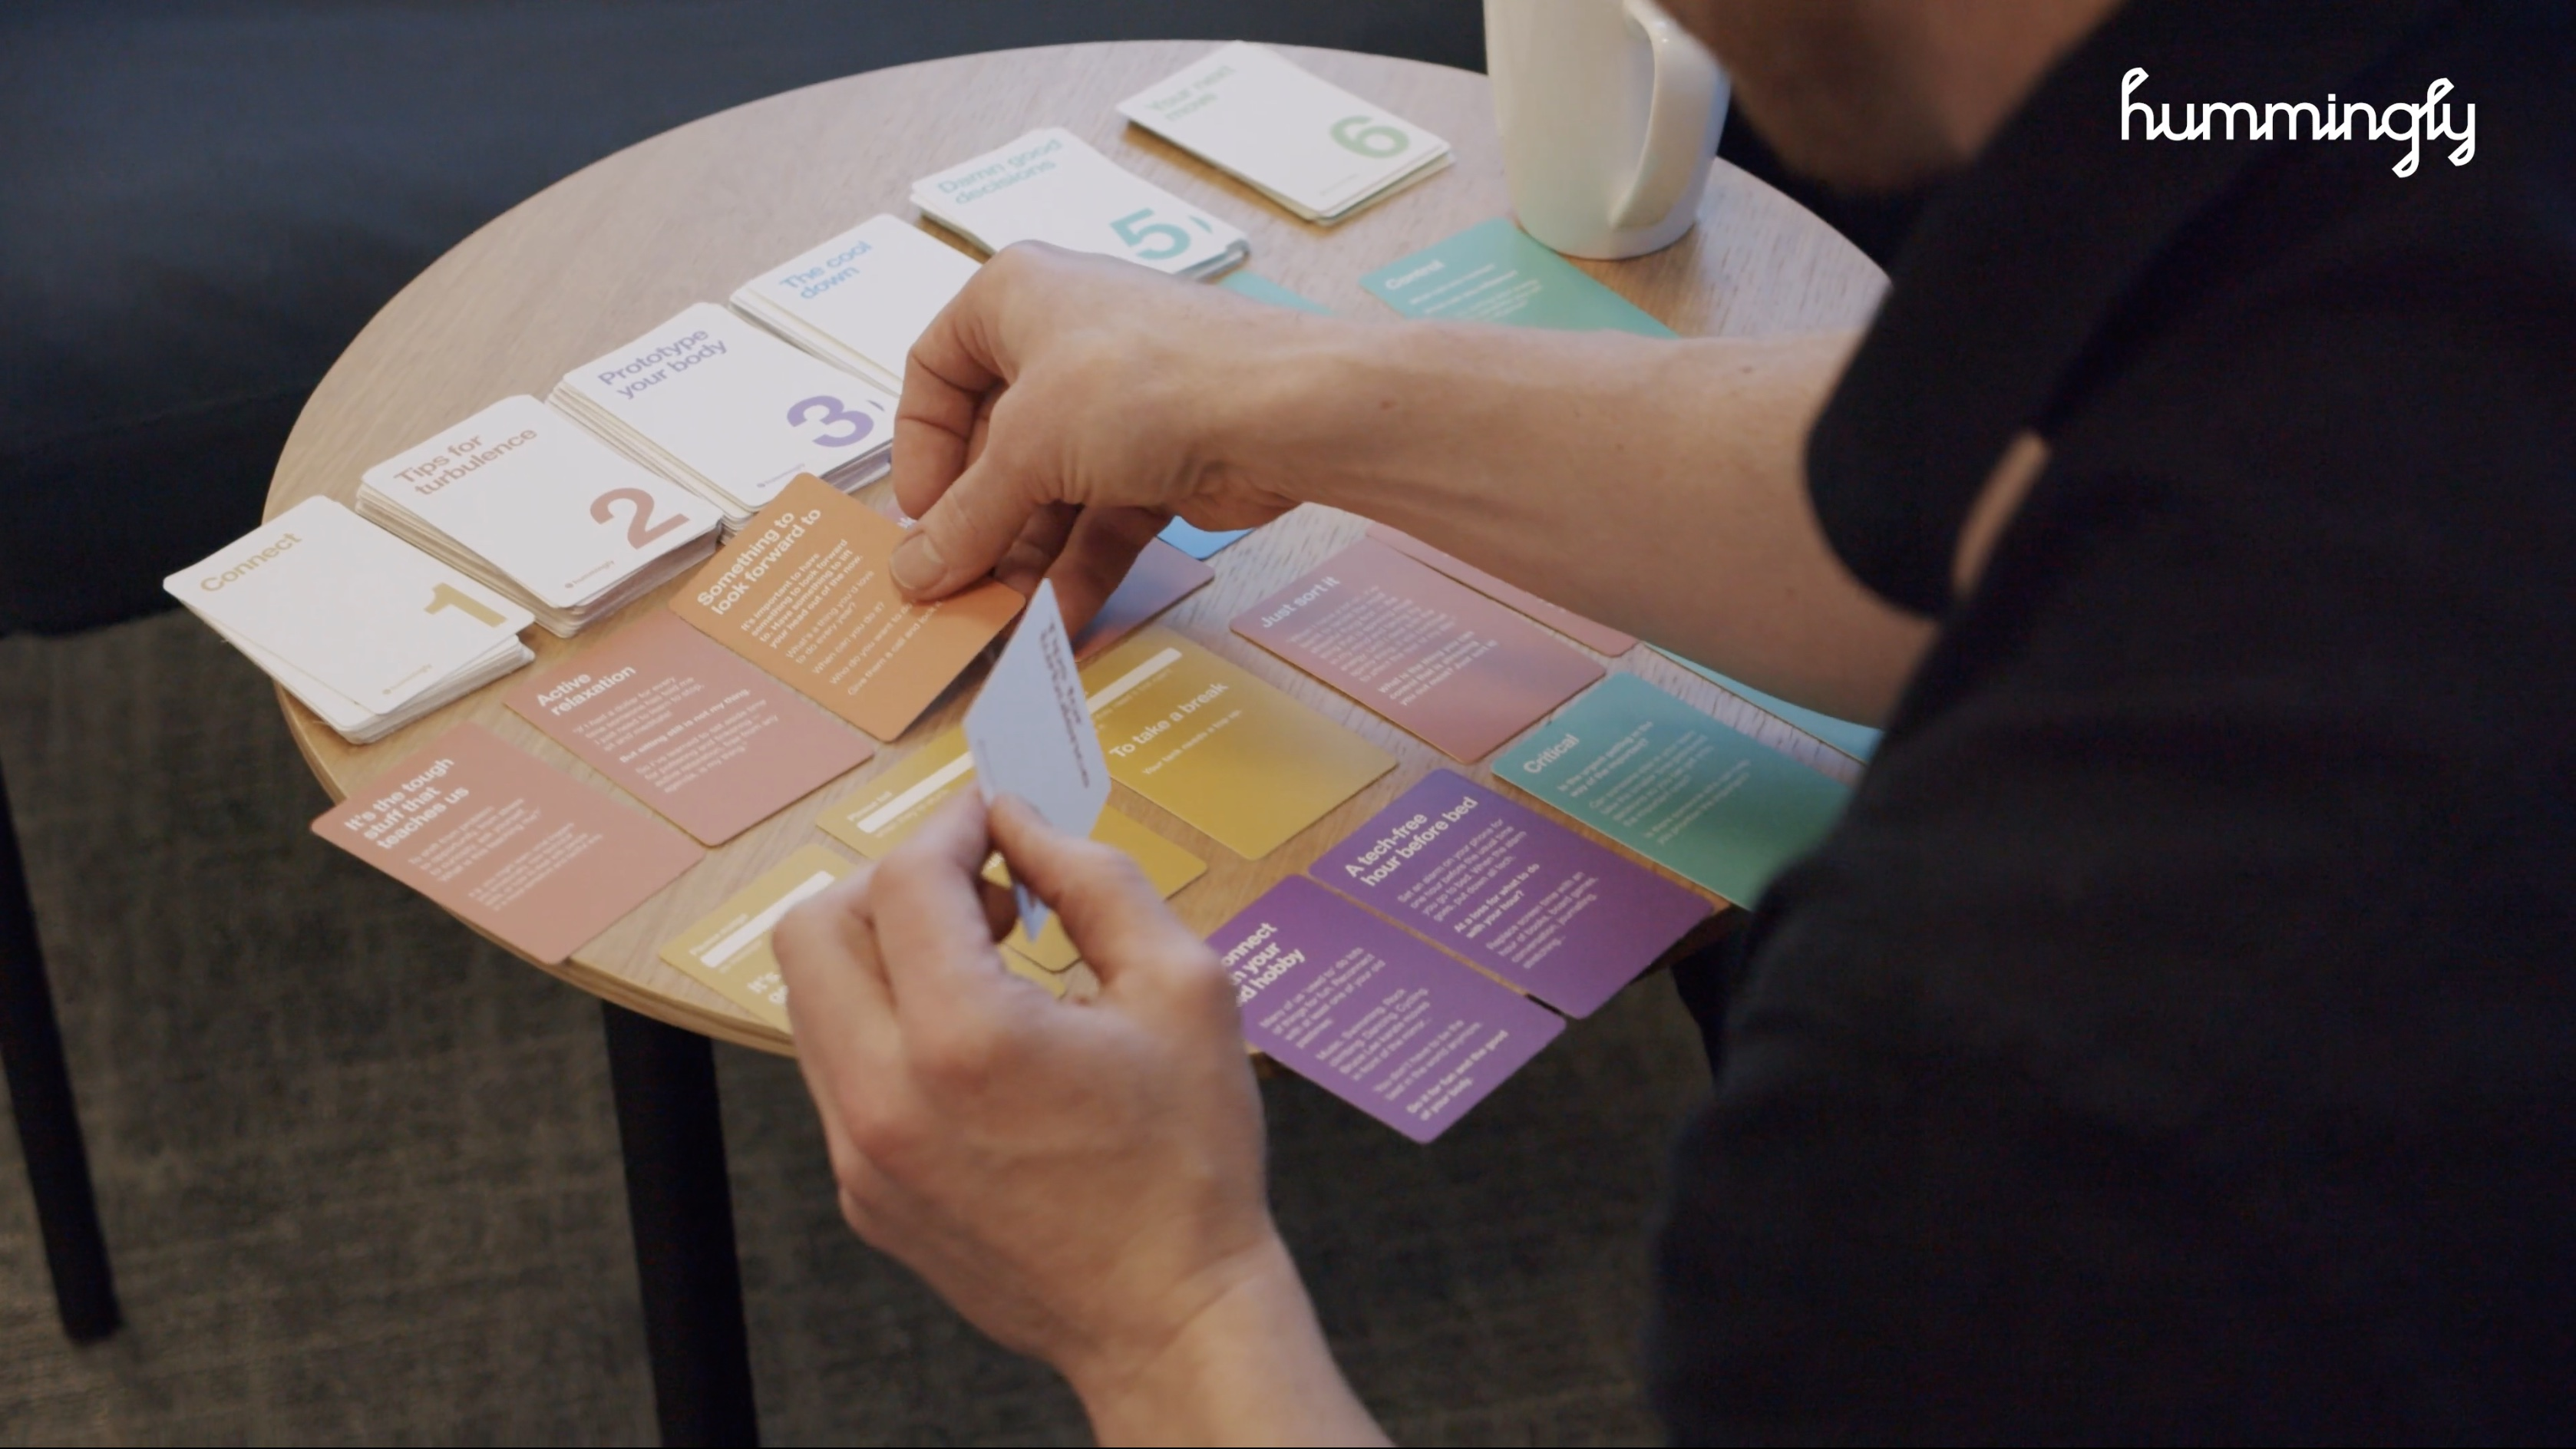 A quick and easy 'how to' guide for using the Doing Well cards.